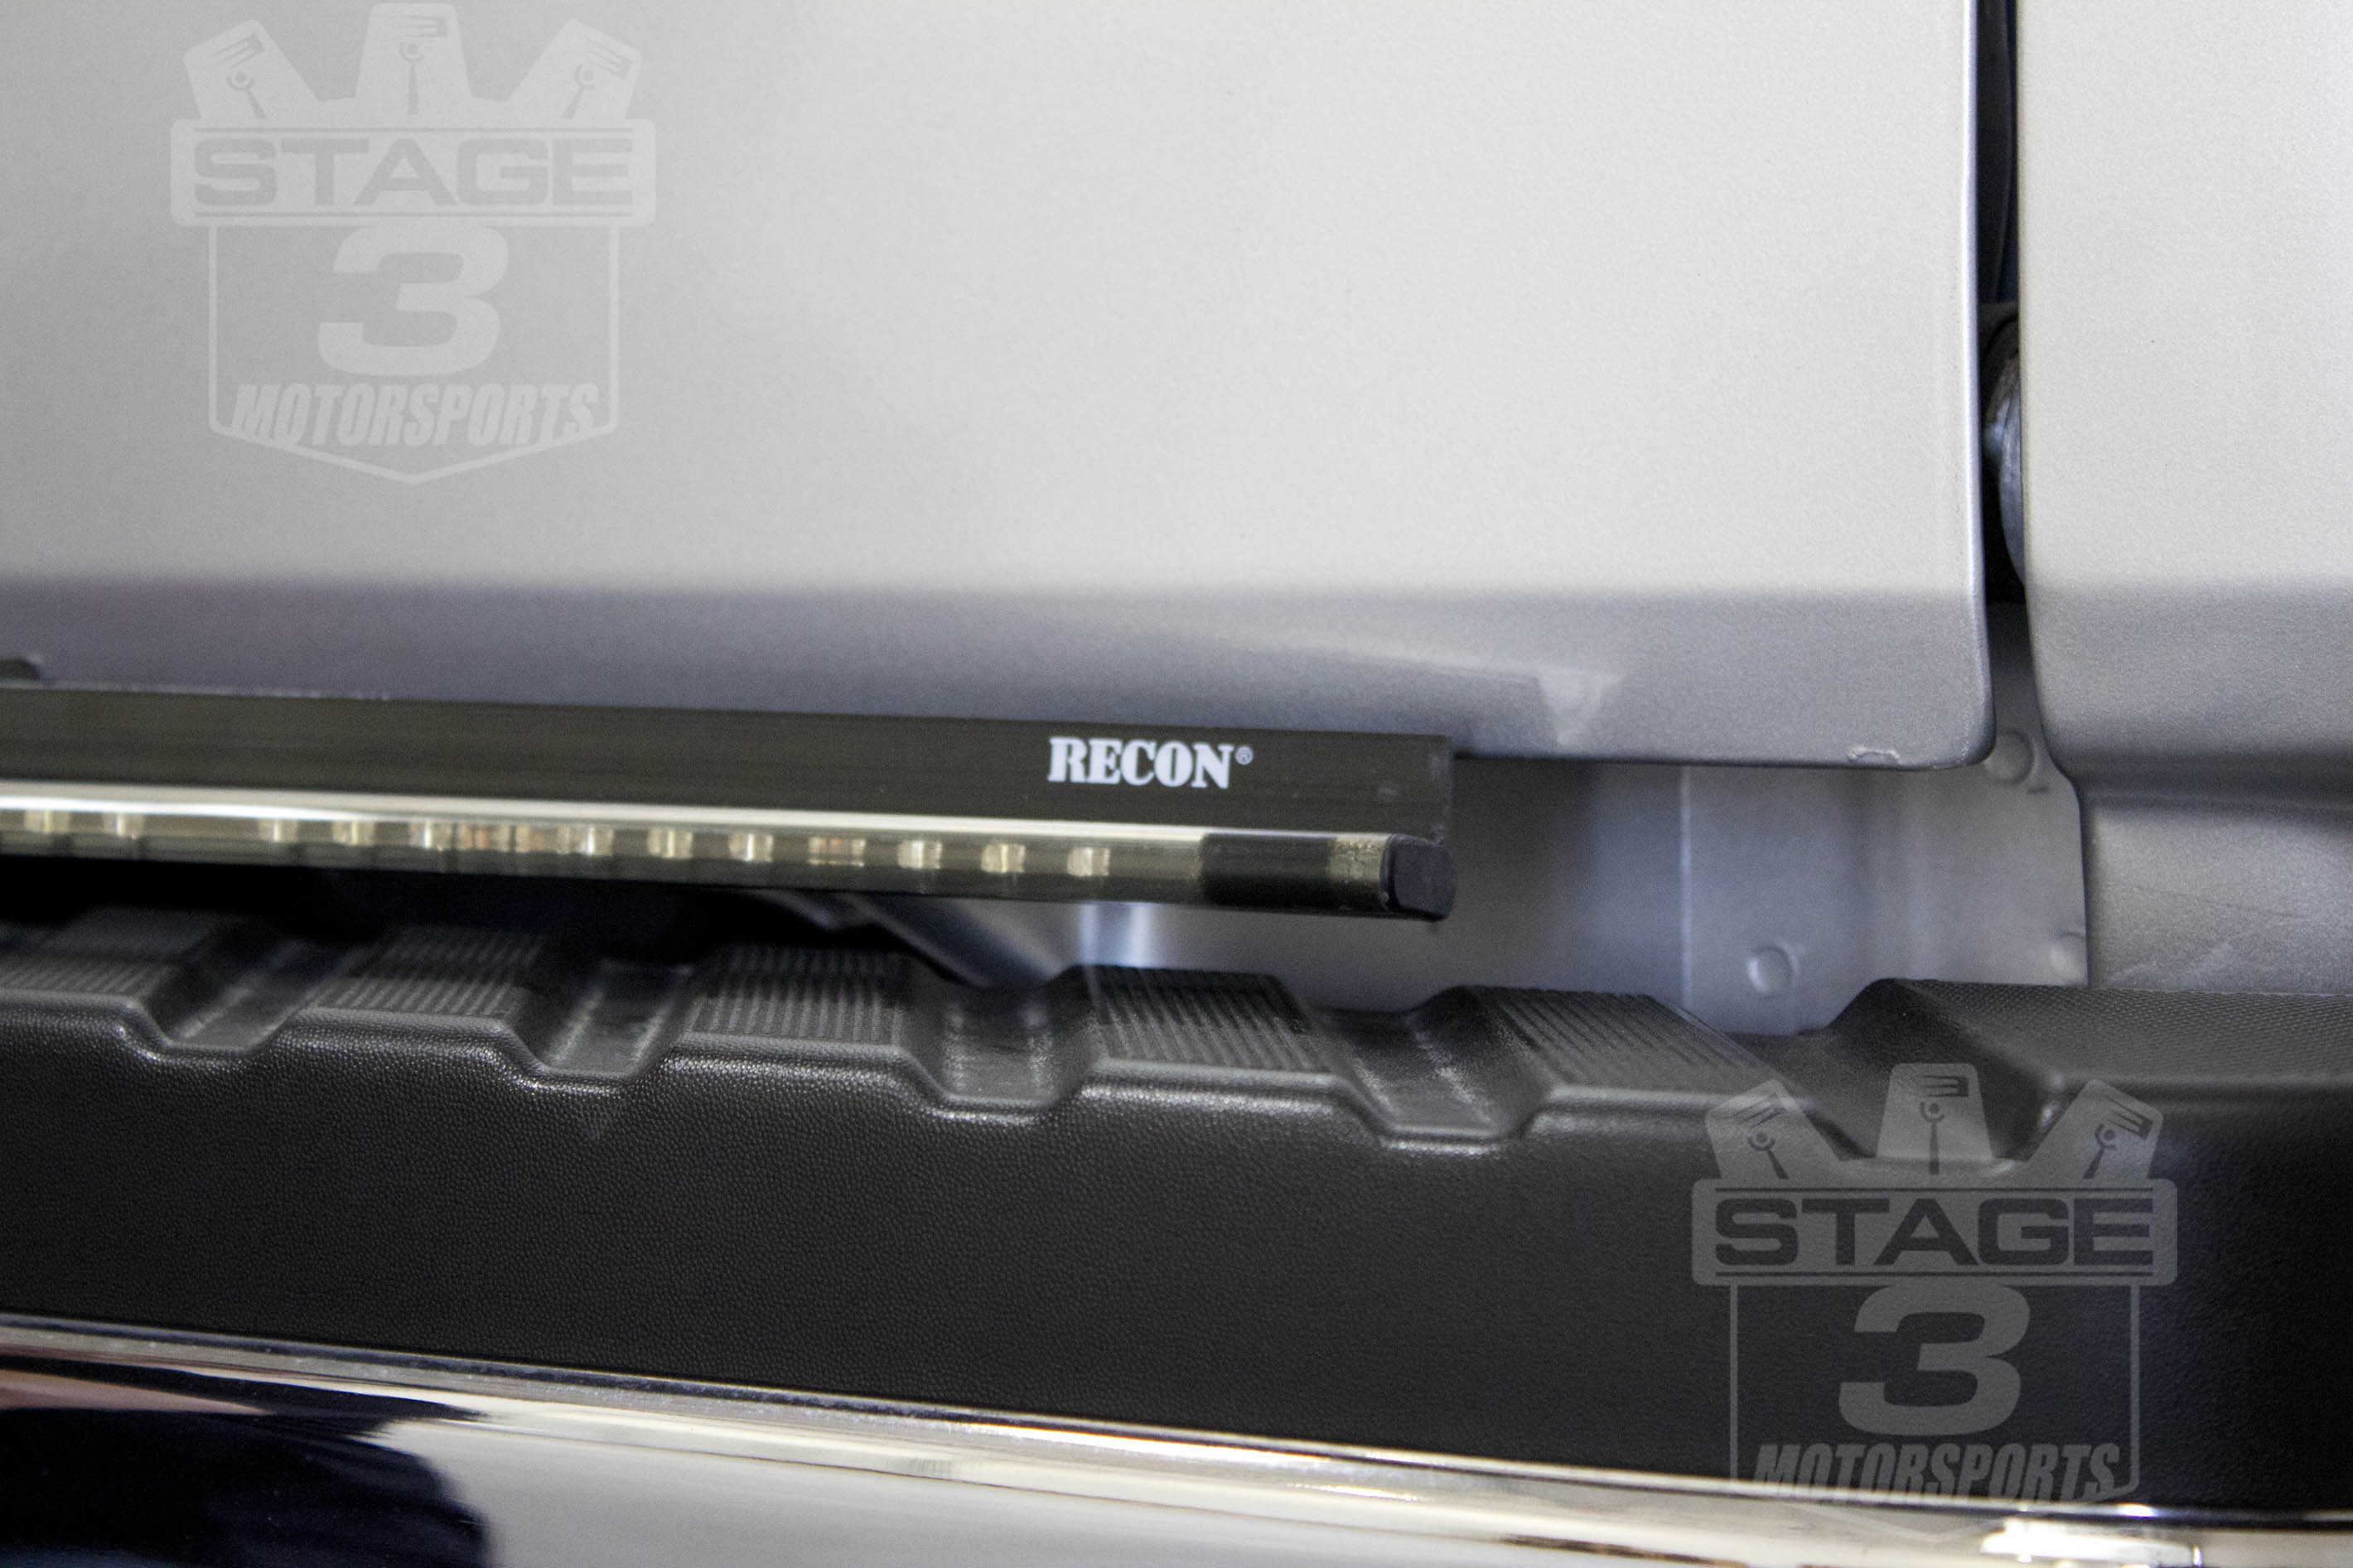 F150 recon tail gate led light bar installed name recon led light bar ford f 150 04g views 22715 aloadofball Gallery